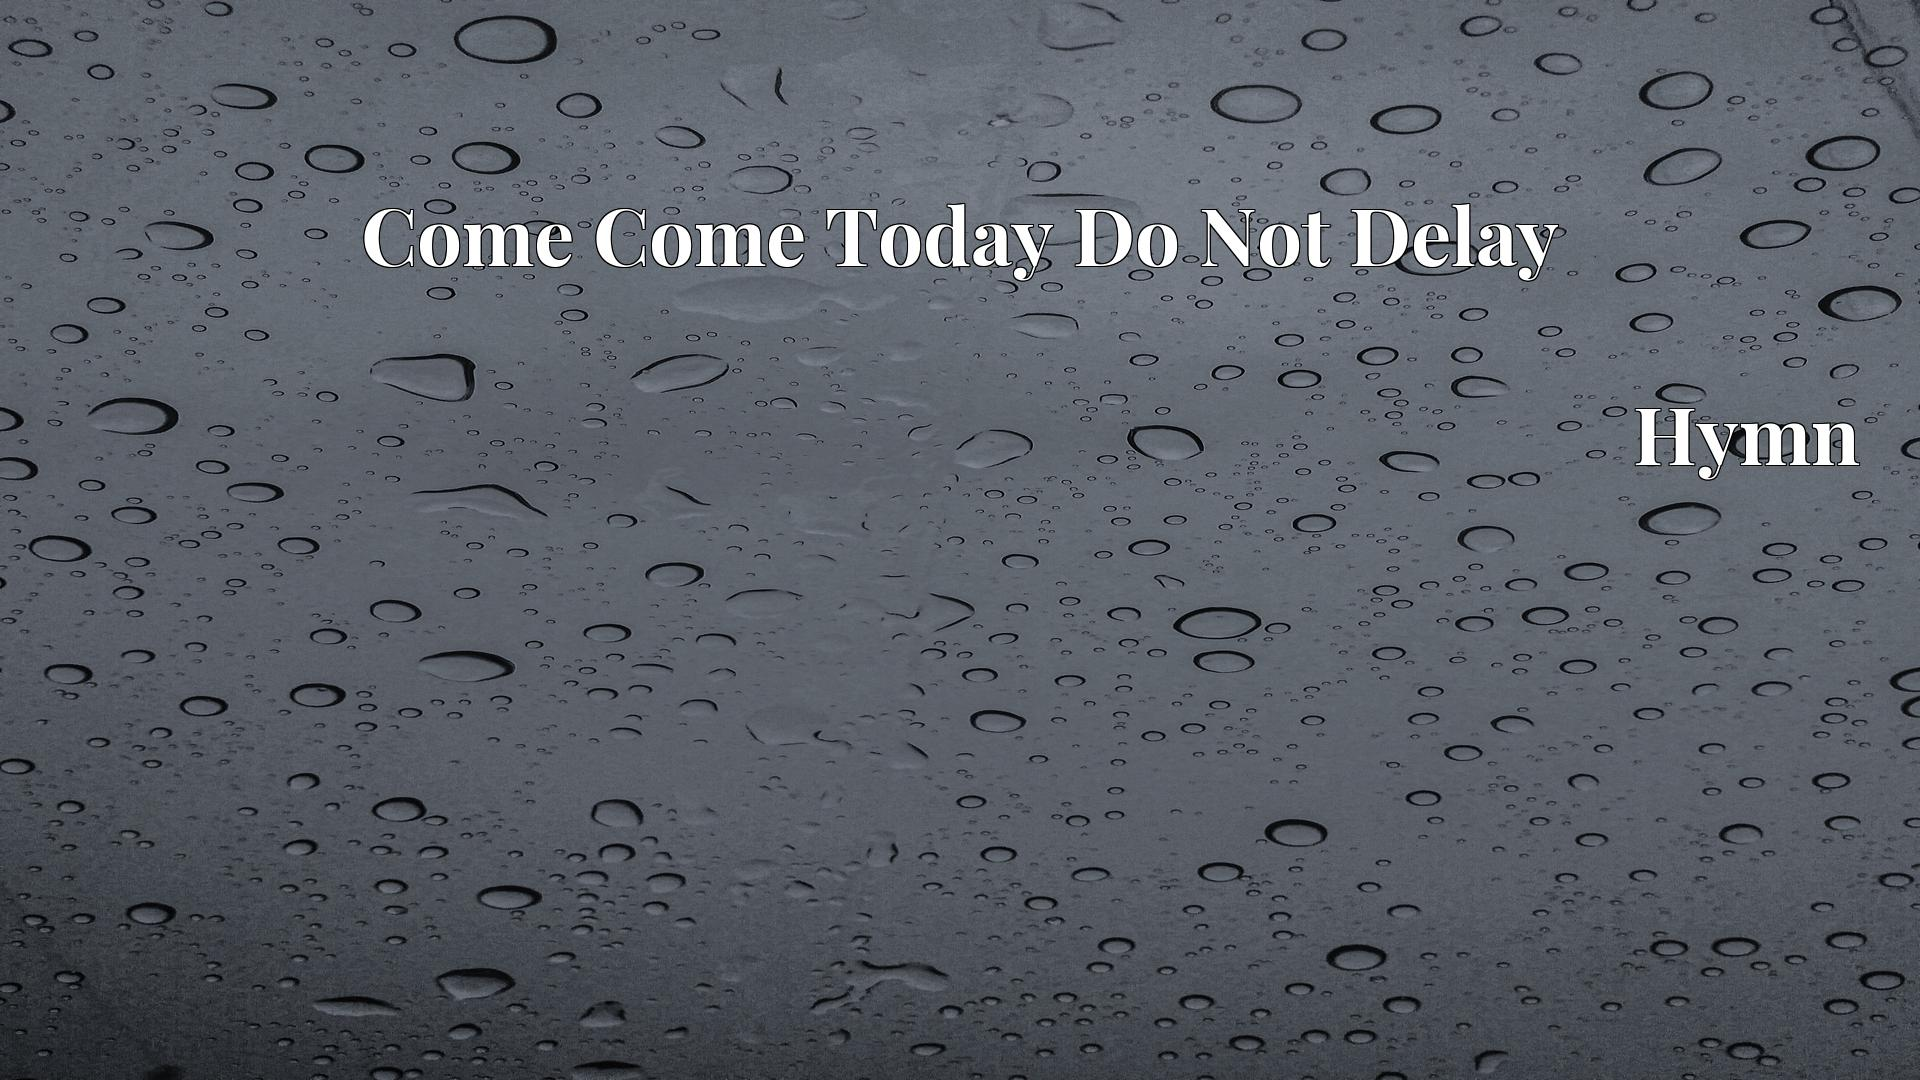 Come Come Today Do Not Delay - Hymn